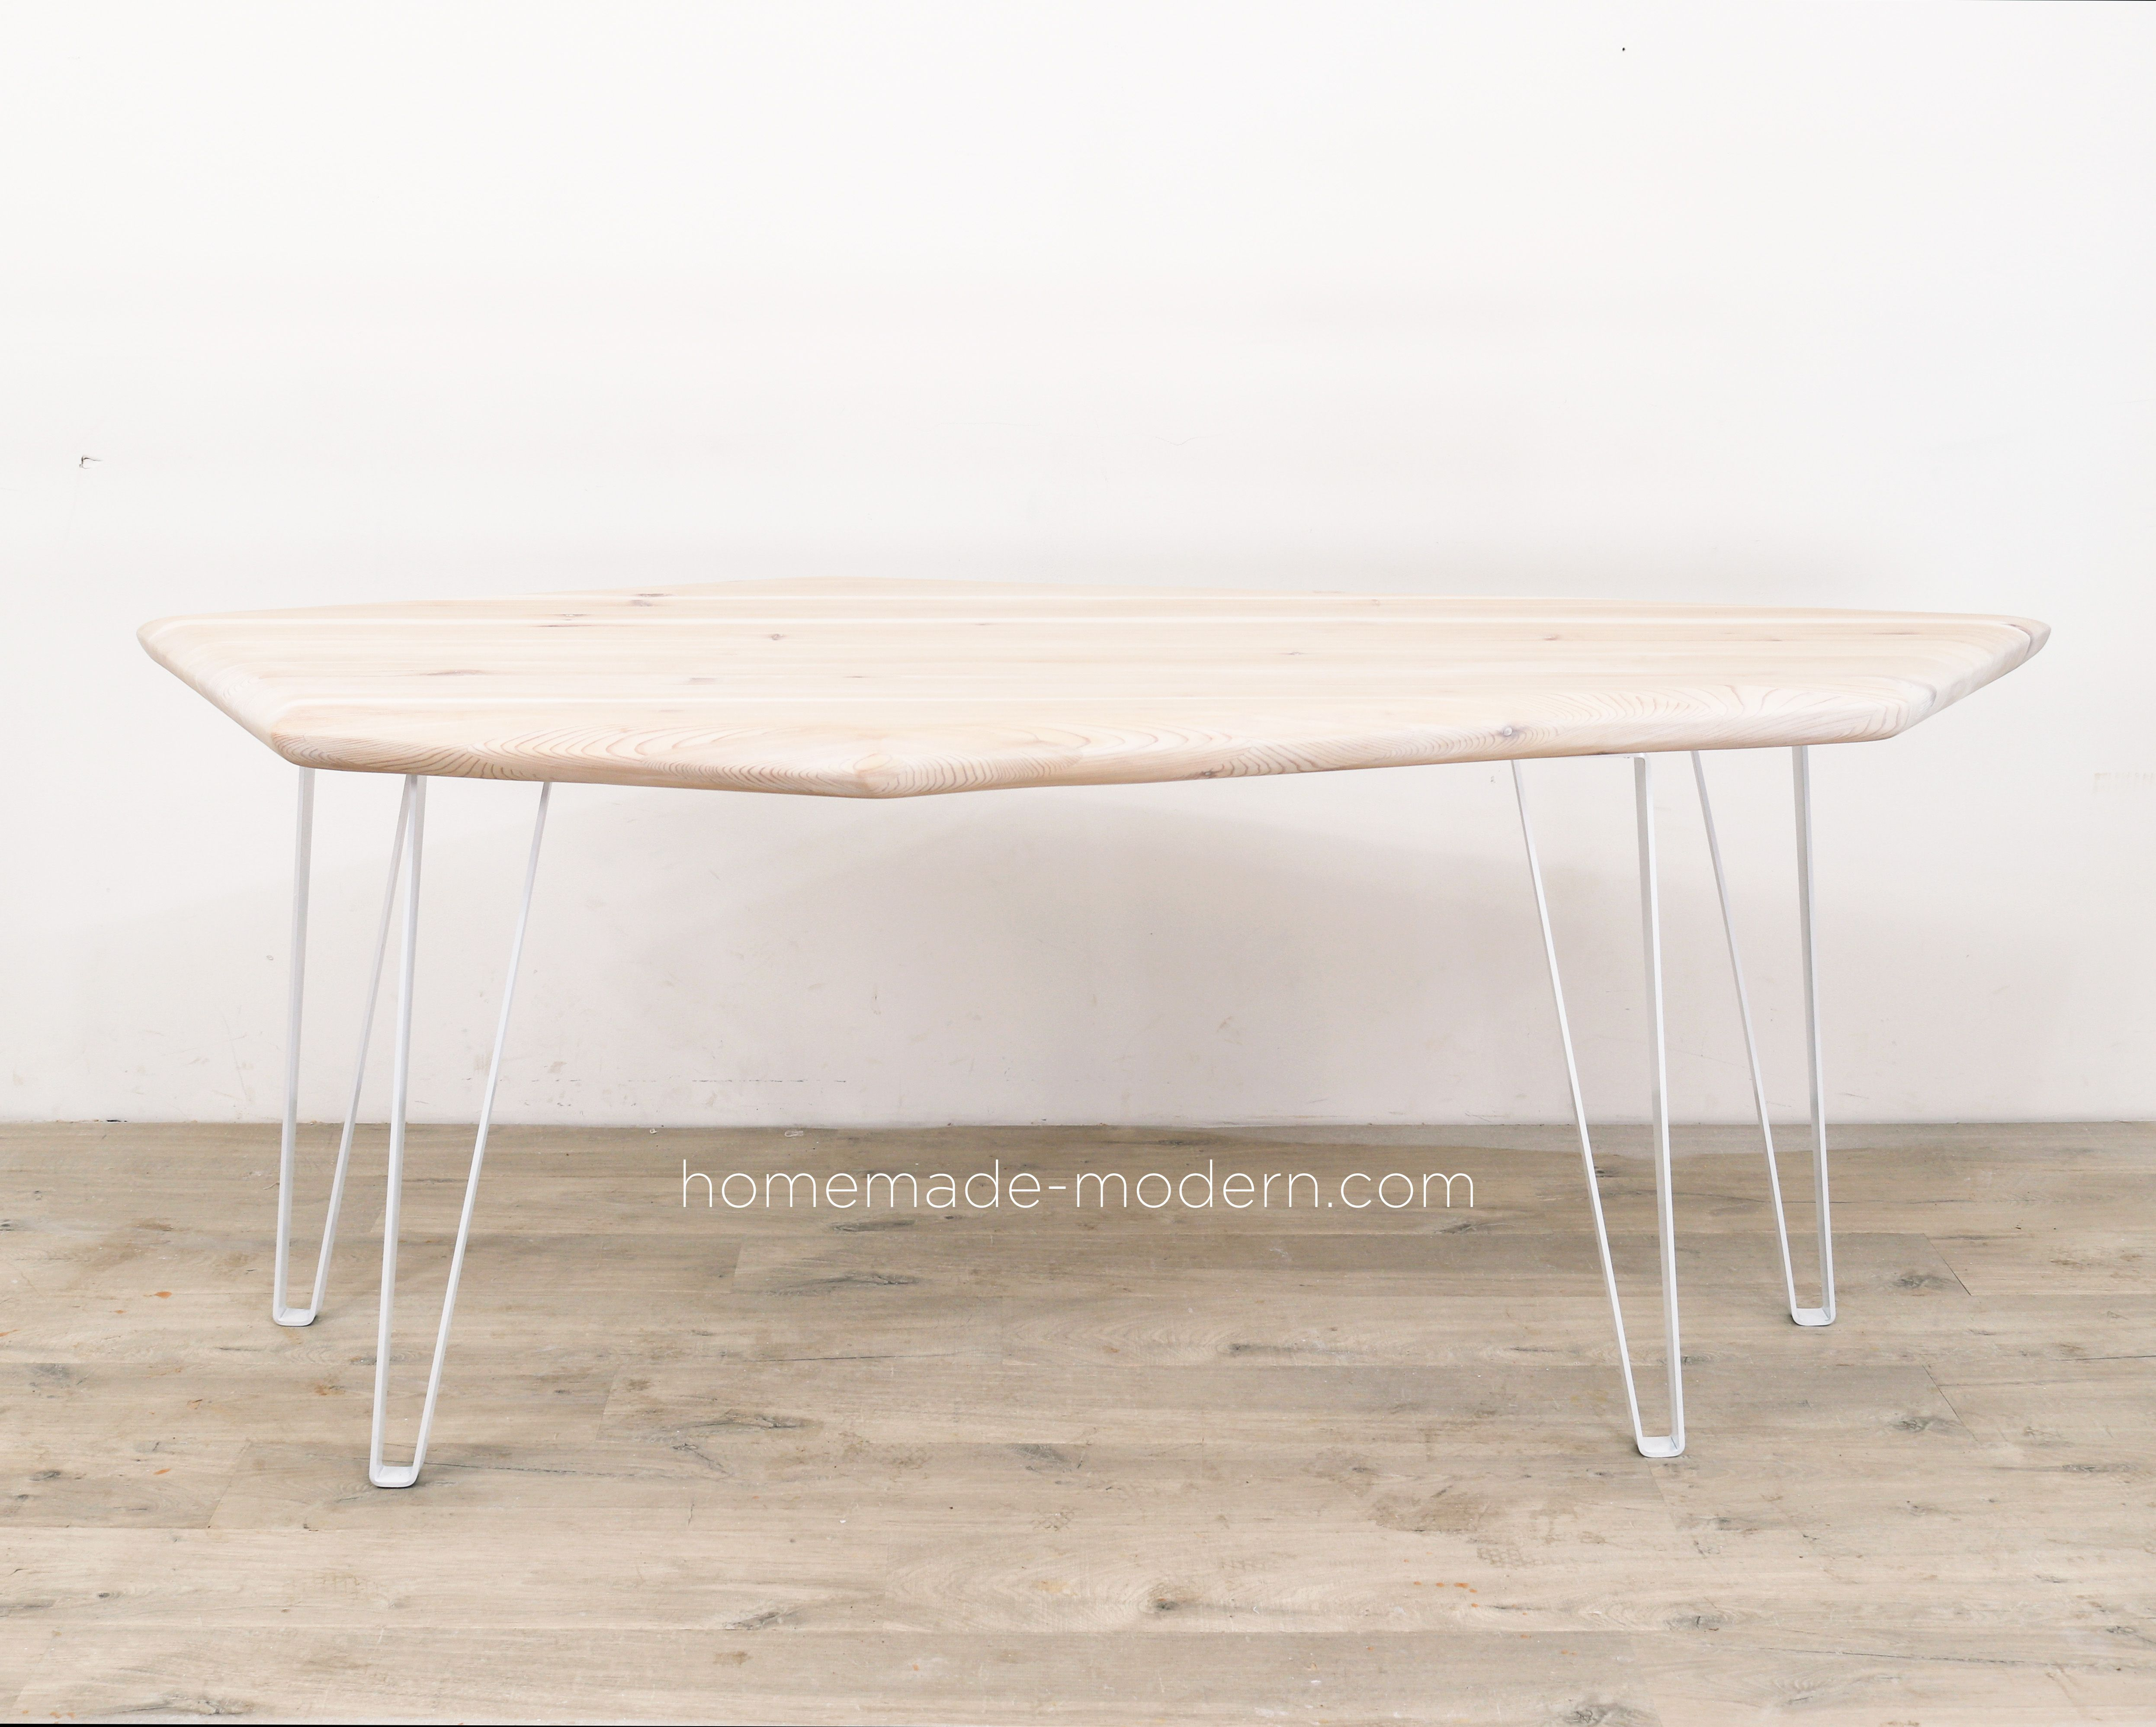 This Modern Geometric Dining Table Was Whitewashed And Made For A Shipping Container House For More In Live Edge Wood Dining Table Diy Dining Table Diy Dining [ 3992 x 4984 Pixel ]